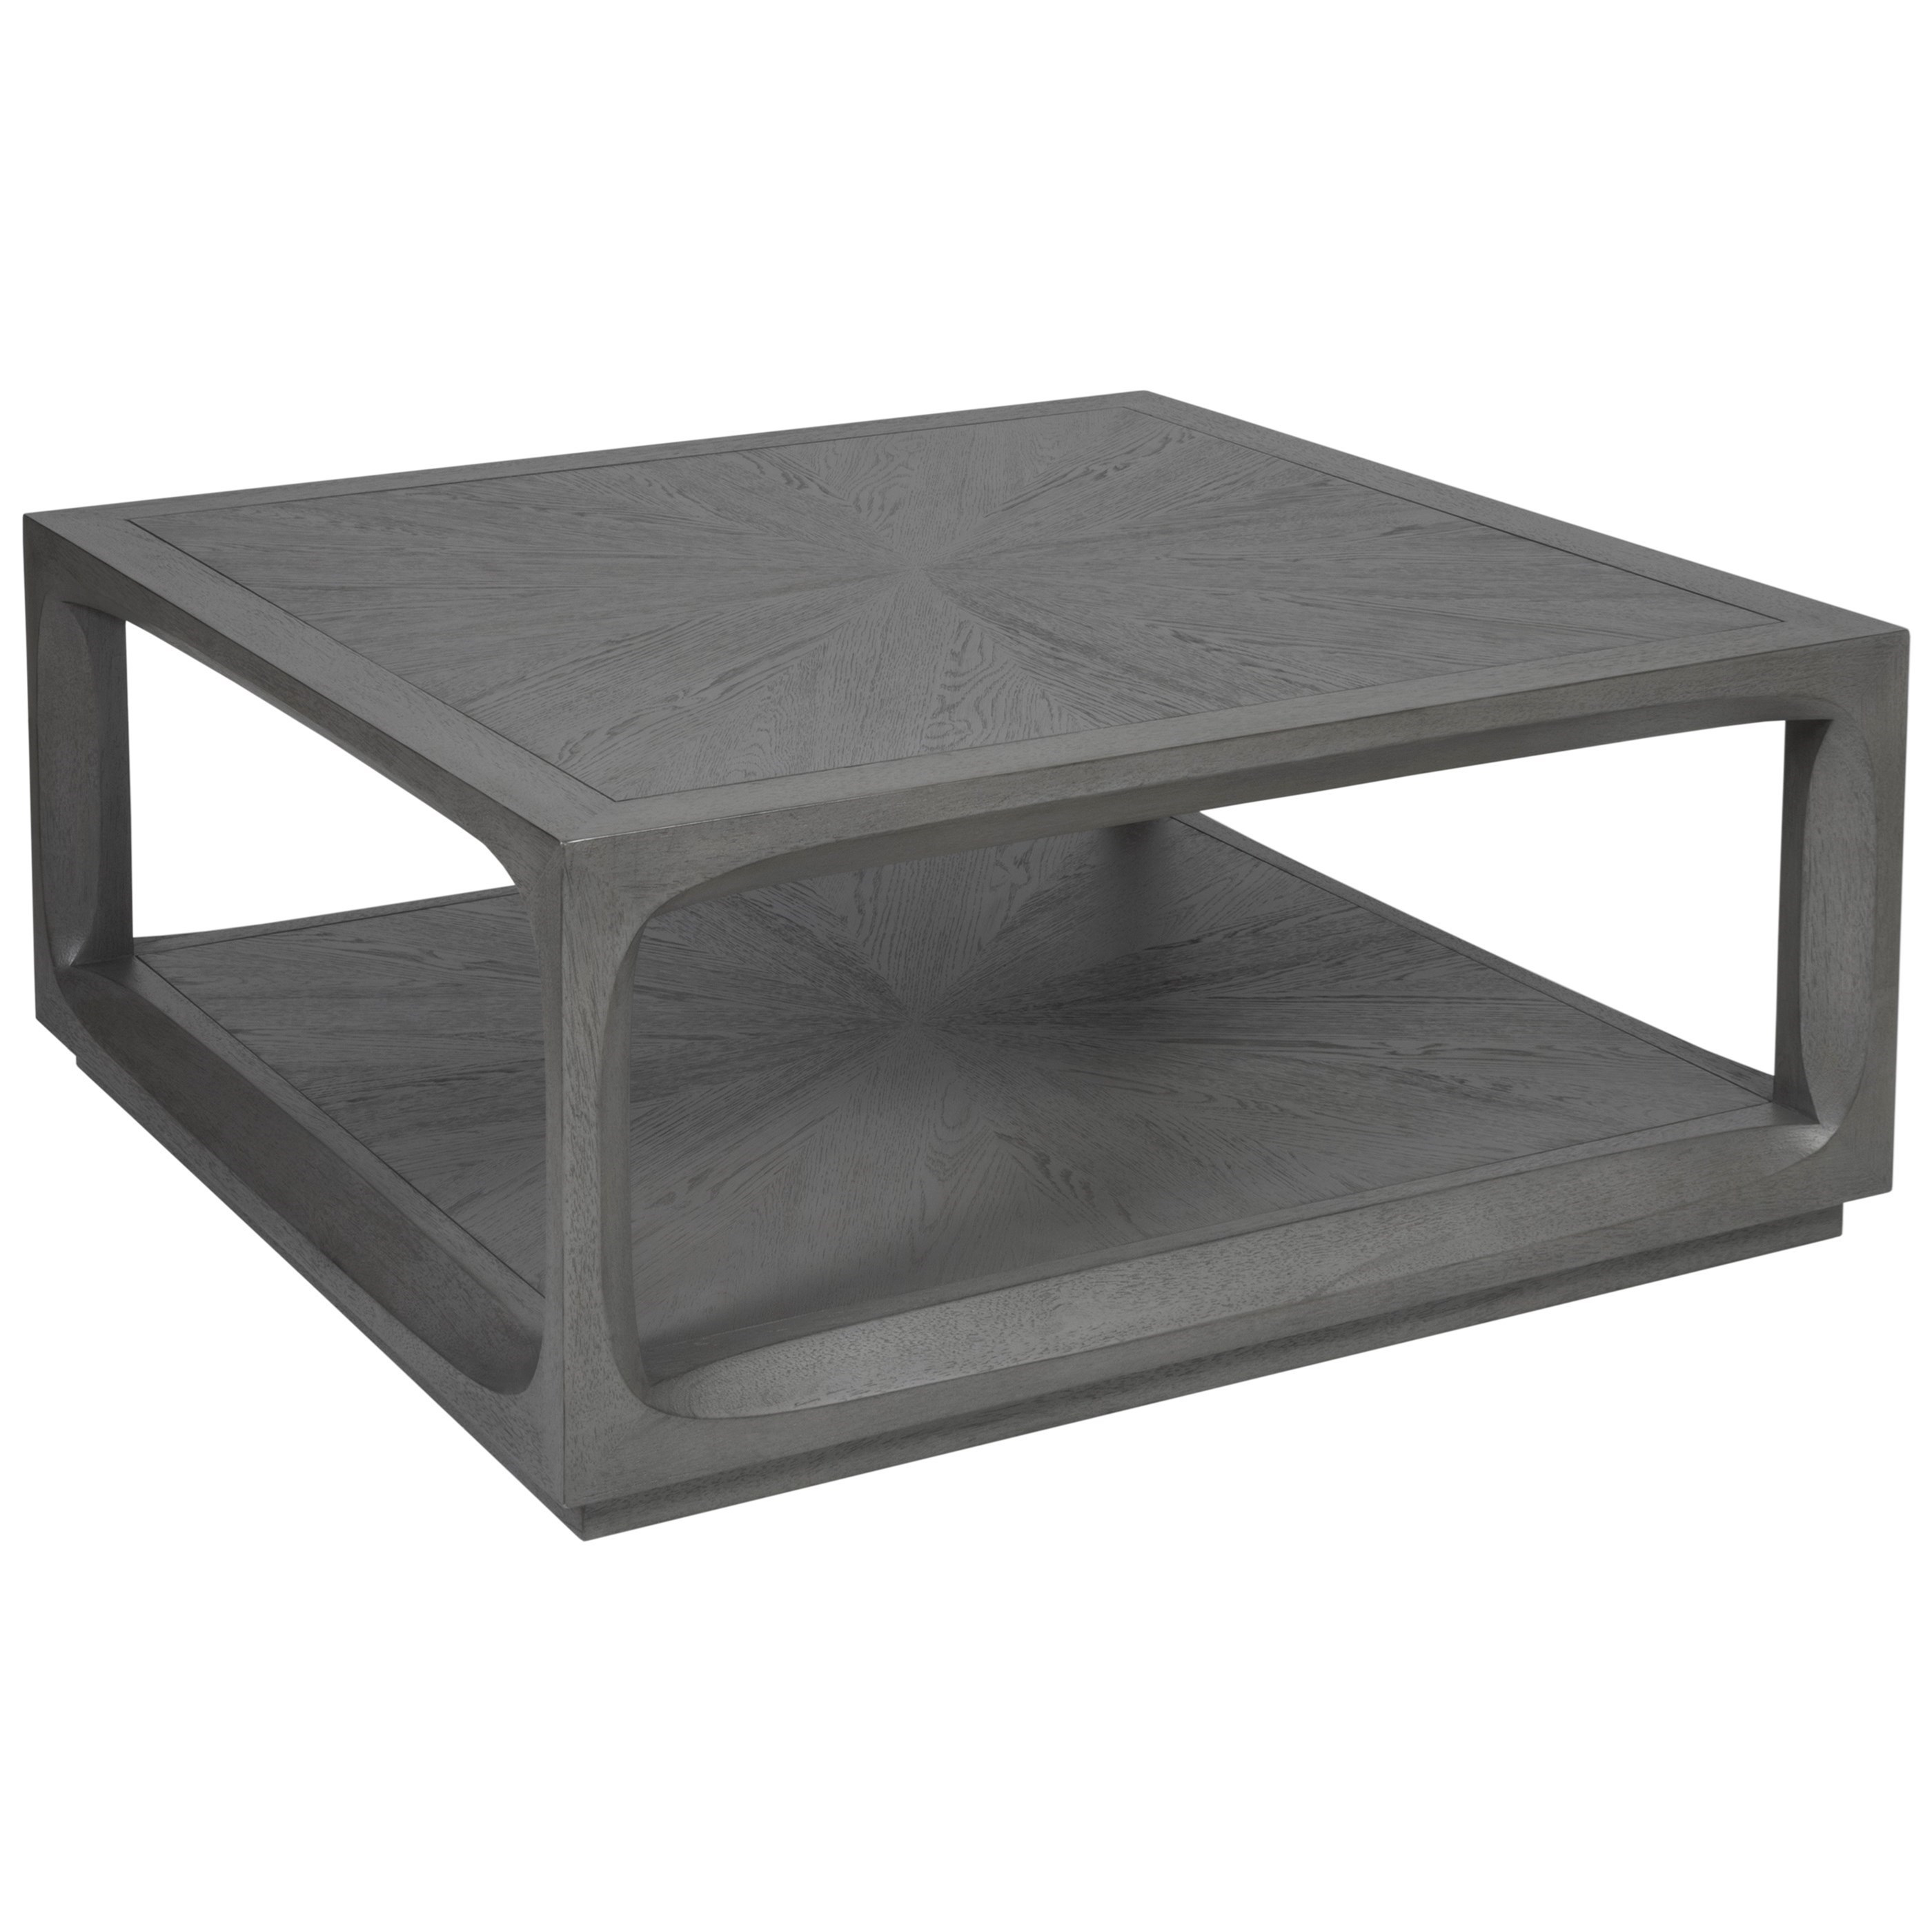 Appellation Square Cocktail Table by Artistica at Baer's Furniture